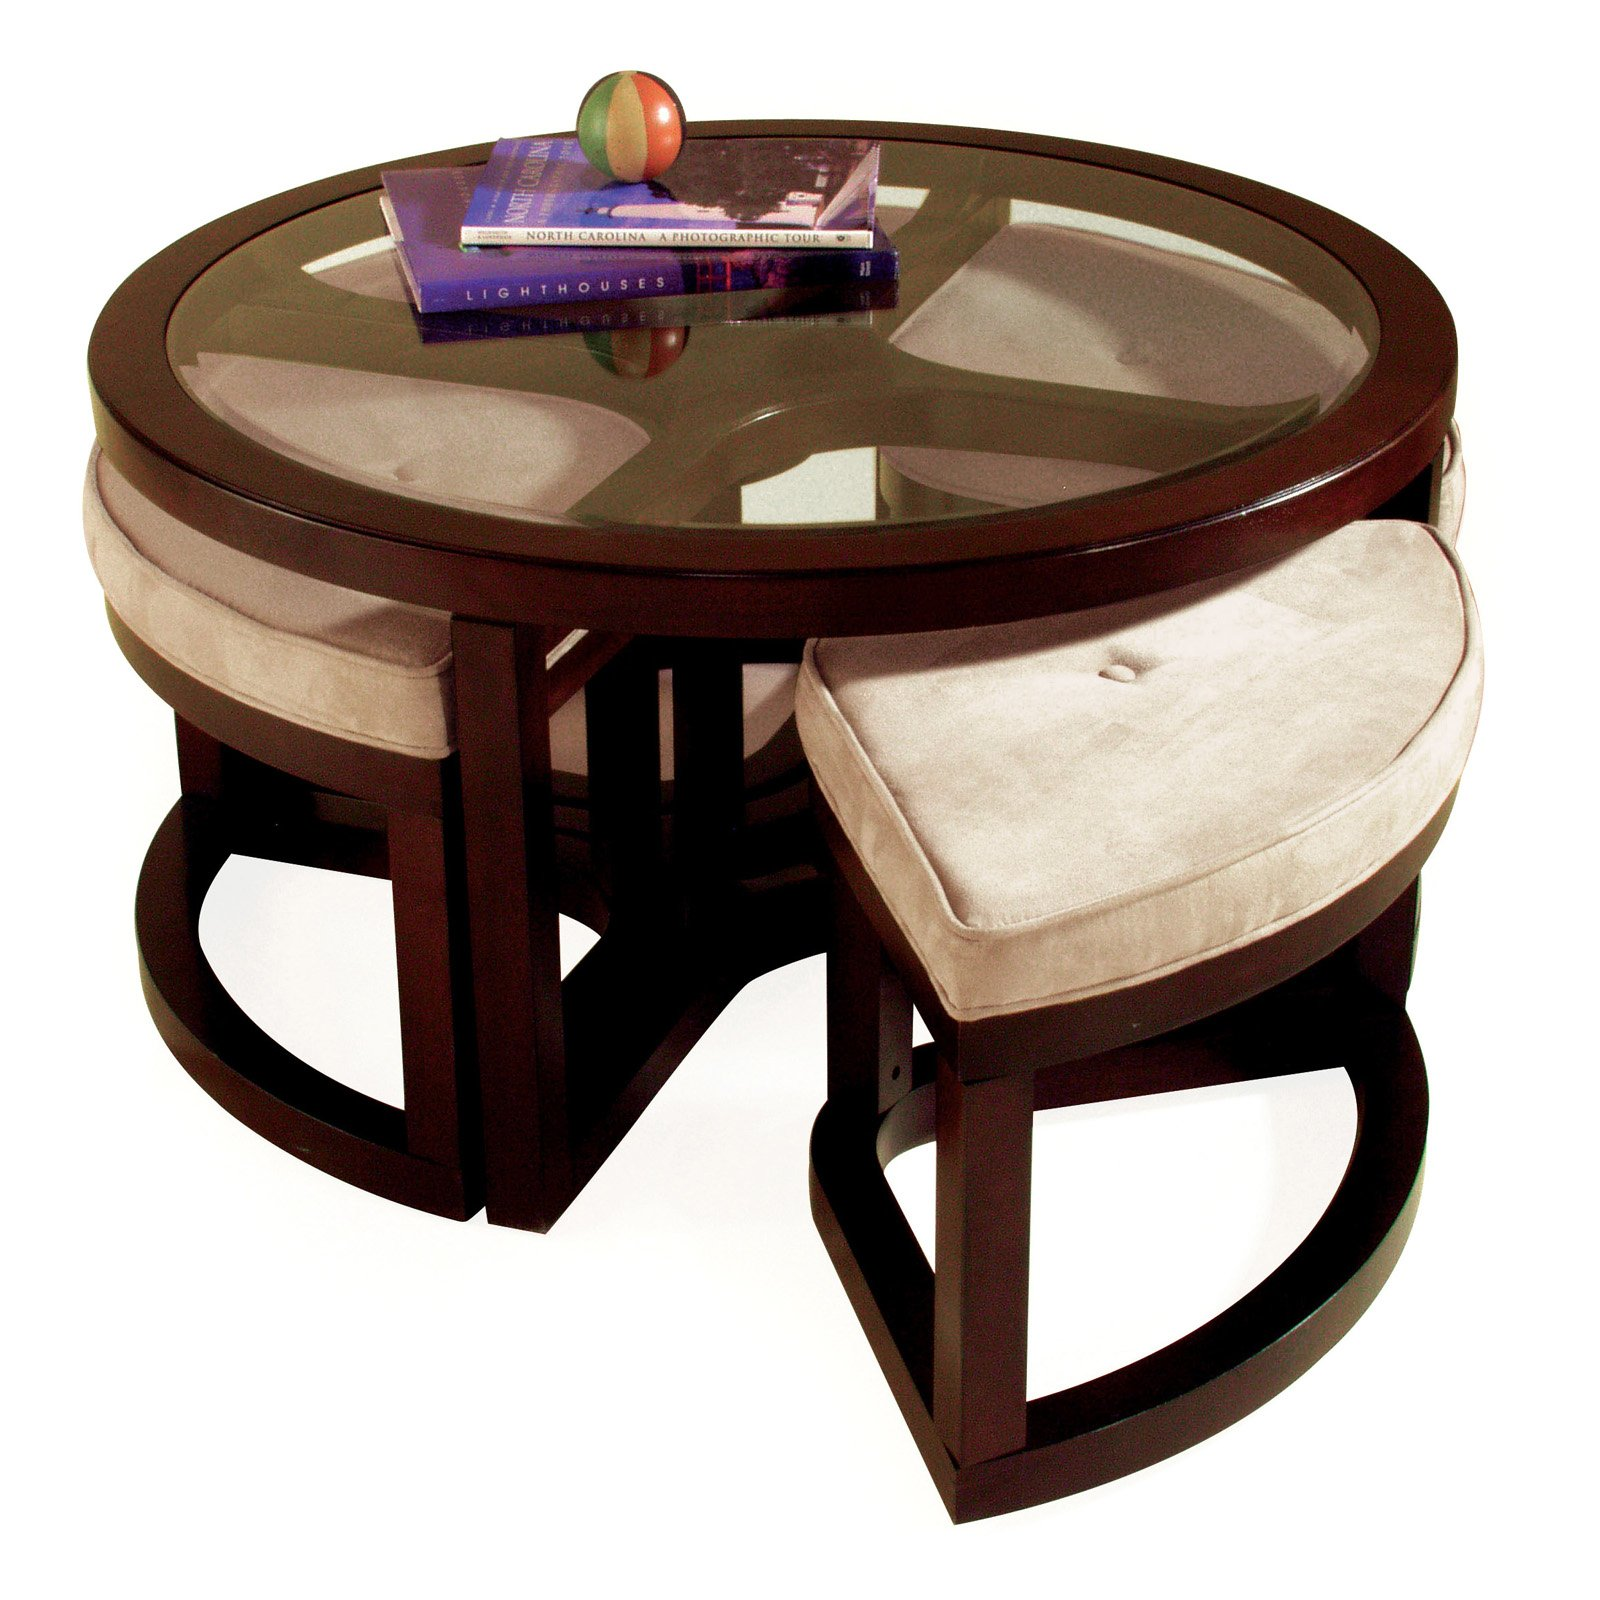 extra long table runners probably terrific cool solid wood coffee latest genoa round with glass top curio natural wooden brown and end sets what size tablecloth for foot gold drum